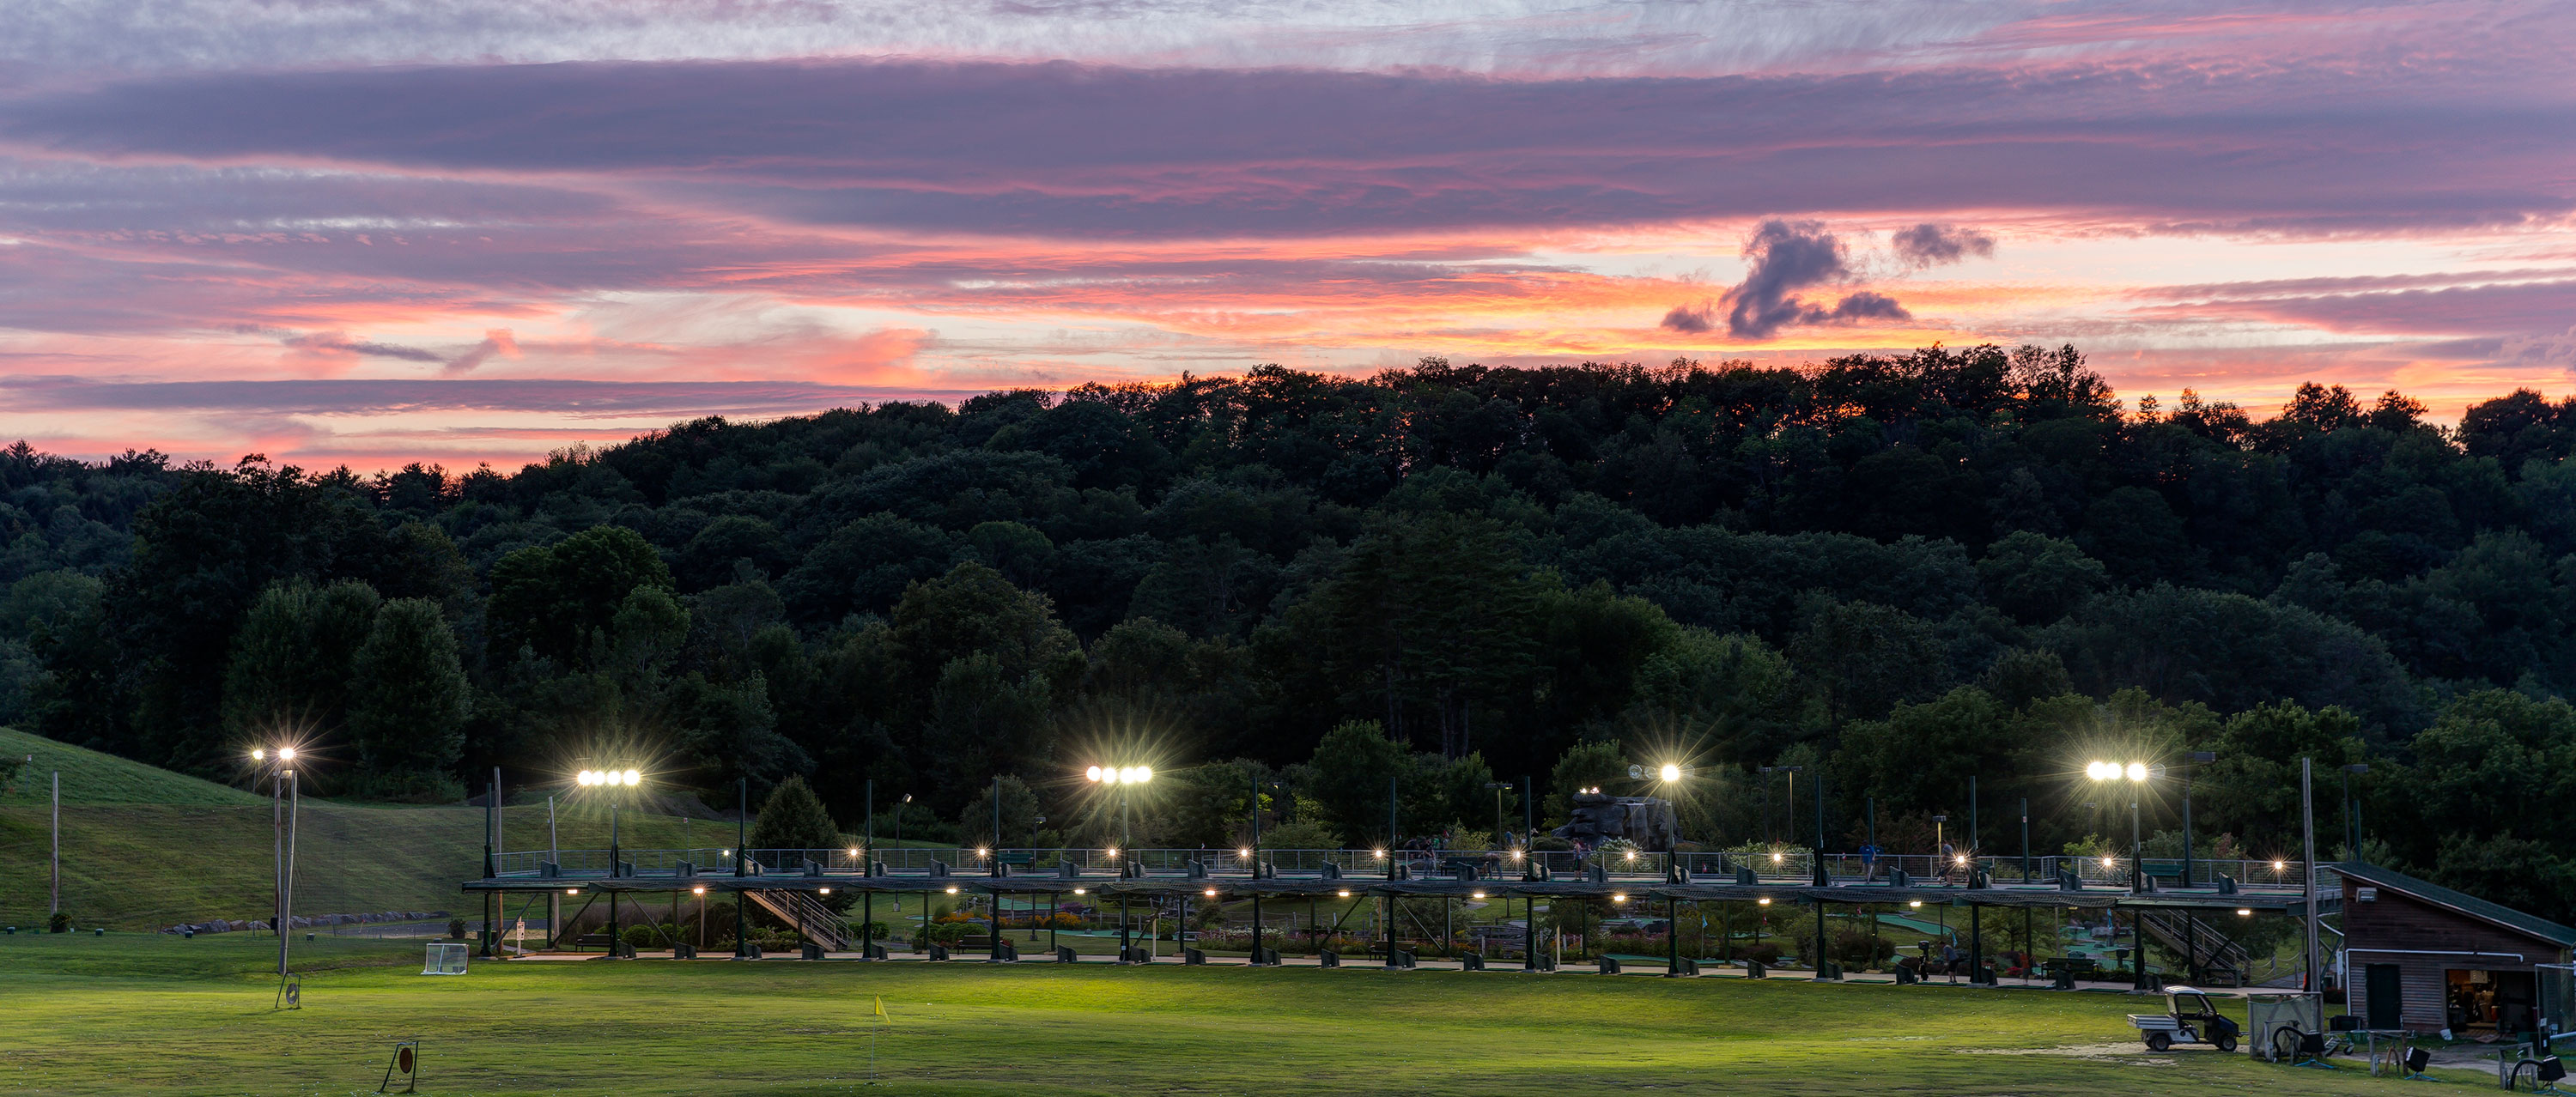 a golf green at sunset, lit by floodlights